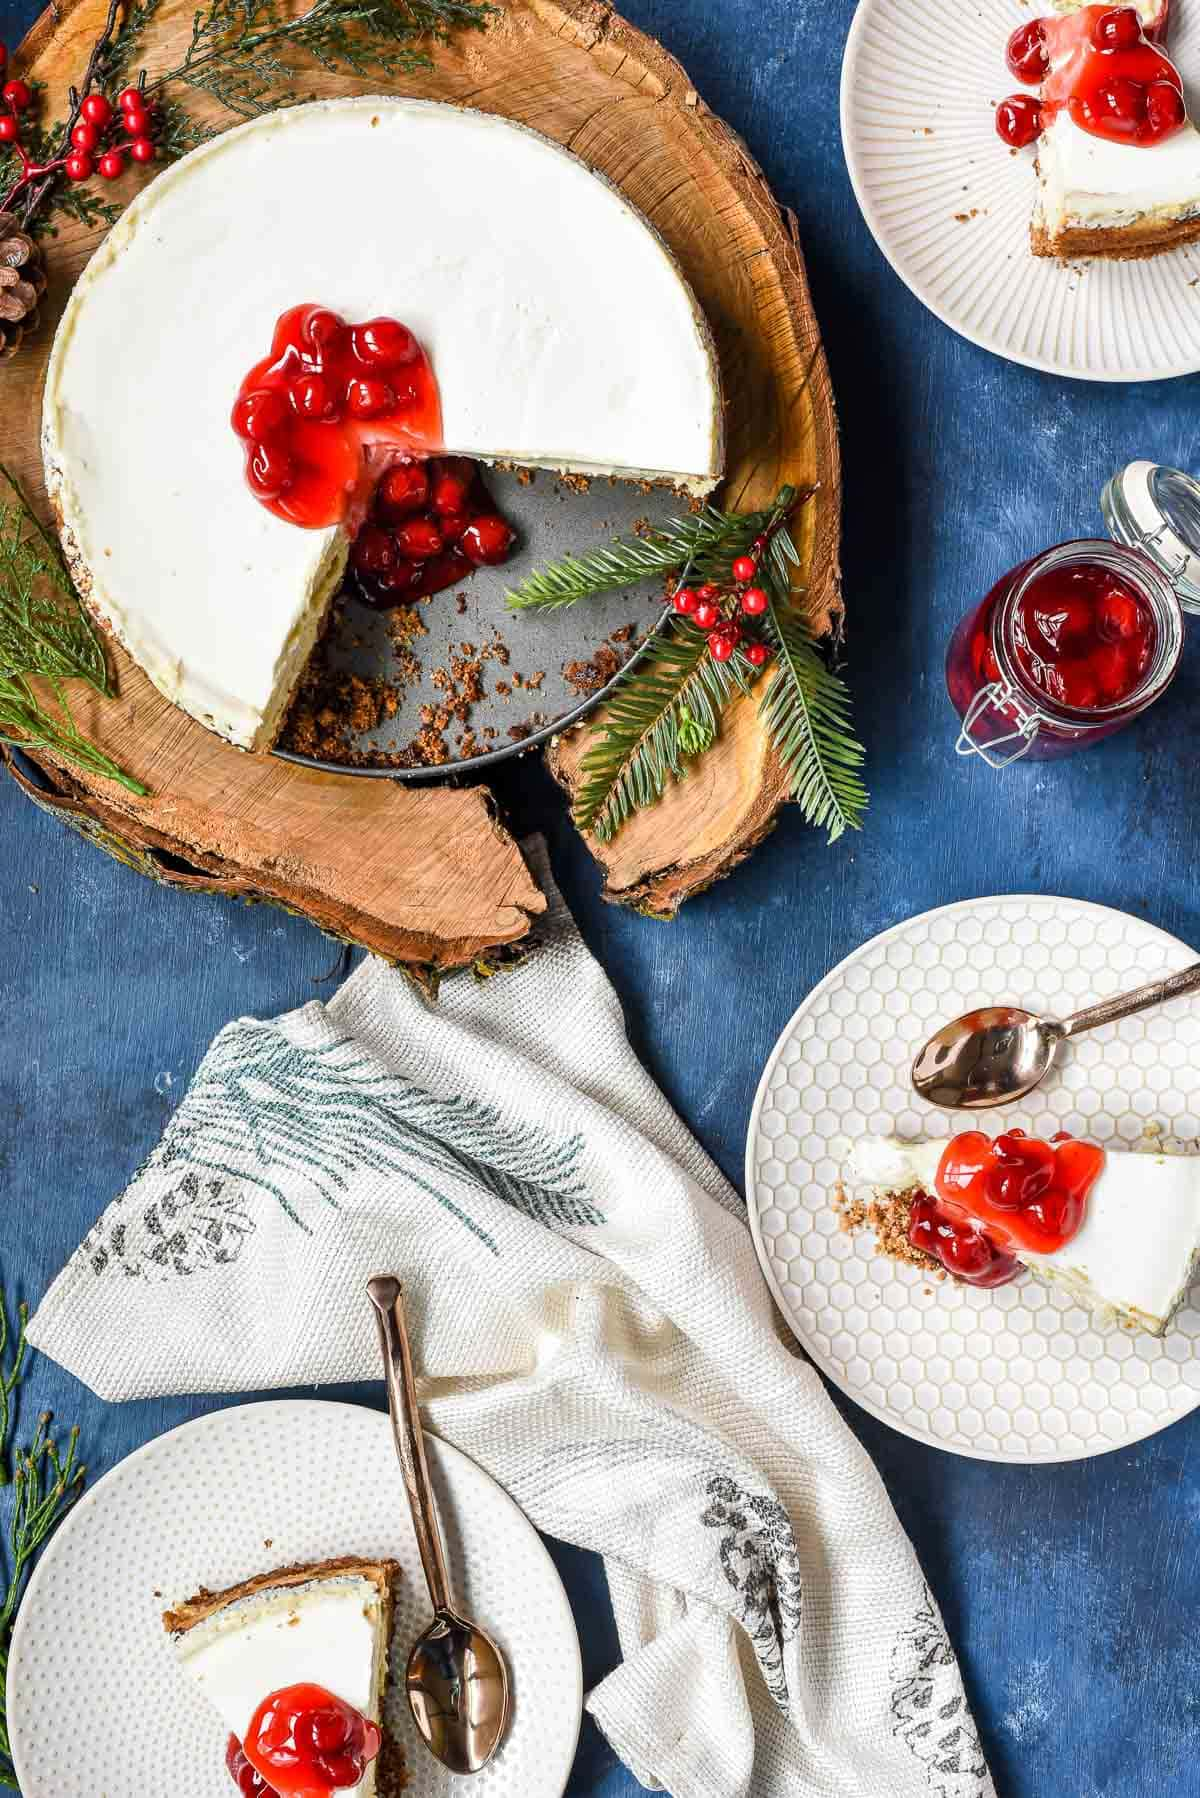 This Sour Cream Cheesecake is light, fluffy, and deceptively easy to make!